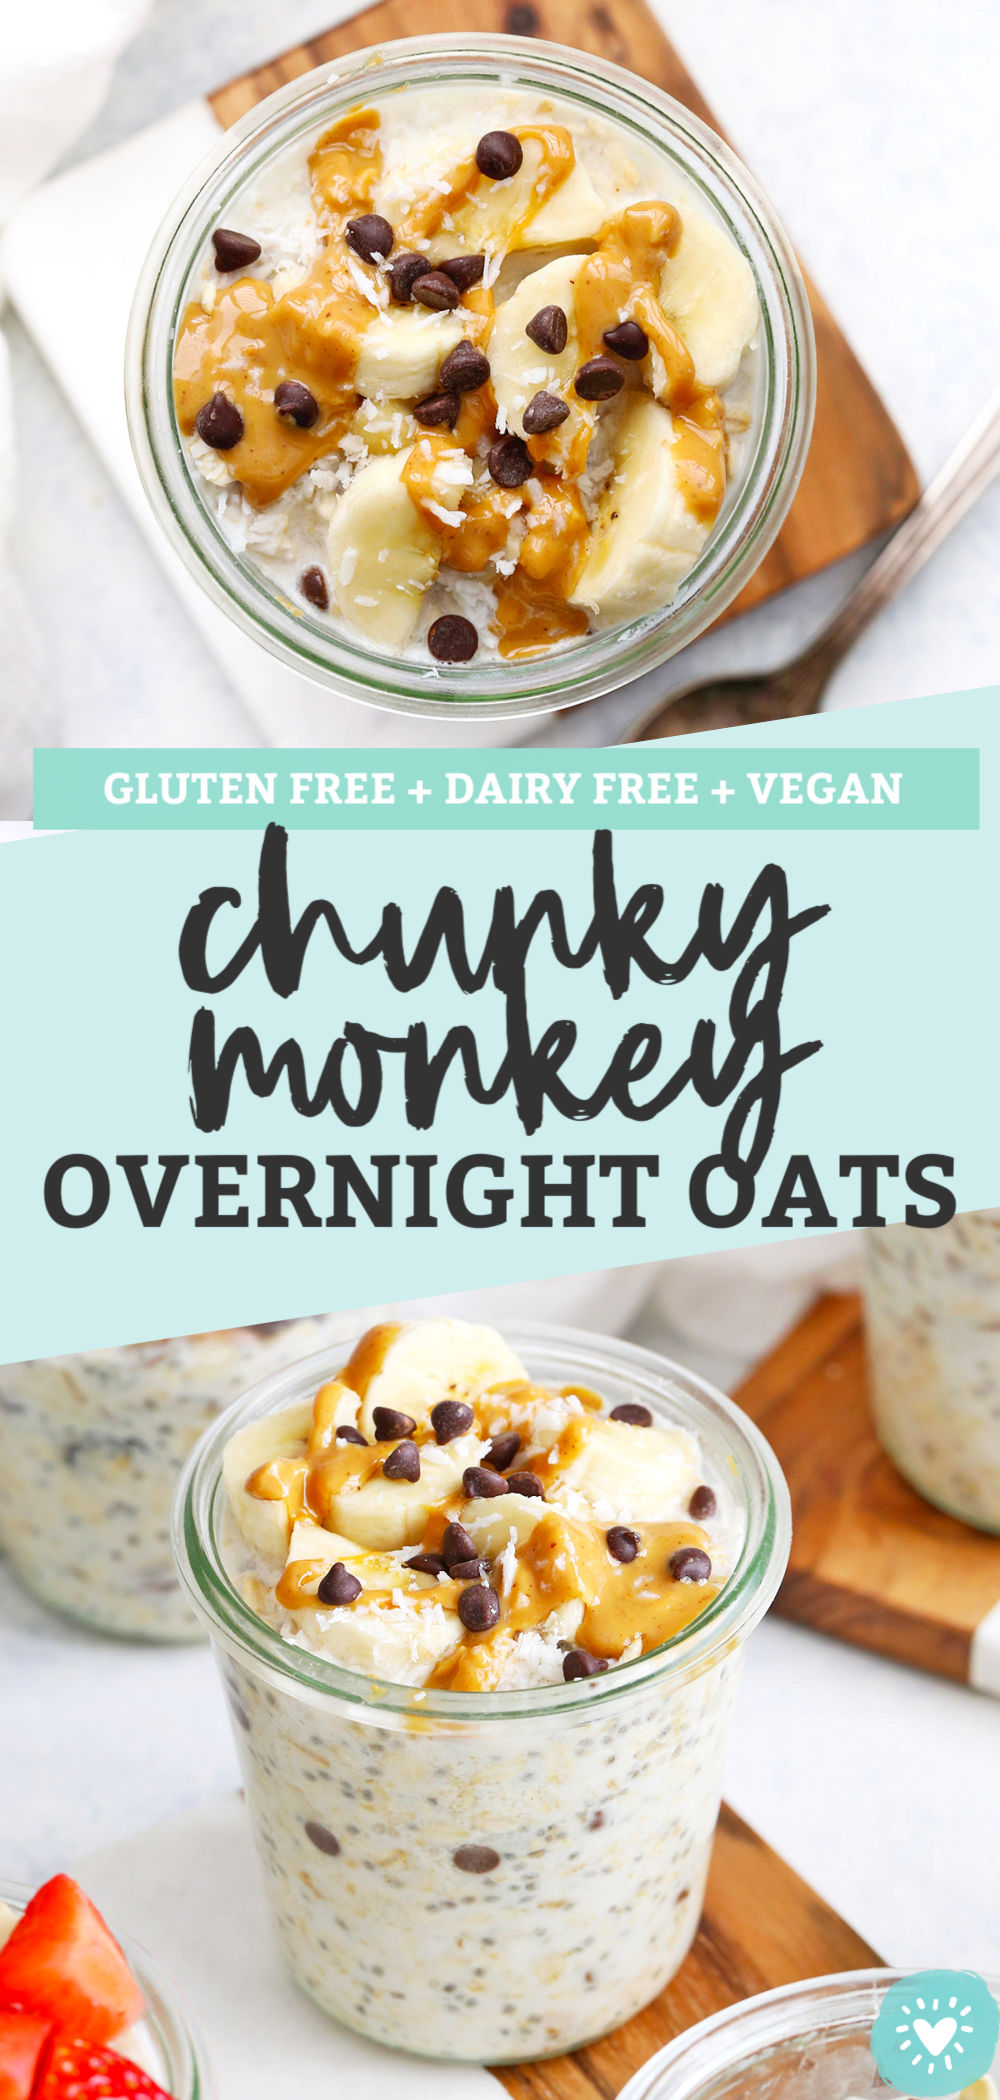 Chunky Monkey Overnight Oats - Creamy peanut butter banana overnight oats with a little sprinkle of coconut and chocolate on top. You'll LOVE this make-ahead breakfast! (Gluten-free, vegan) // Meal Prep Breakfast // Peanut Butter Banana Overnight Oats // Healthy Breakfast #glutenfree #overnightoats #oatmeal #vegan #healthybreakfast